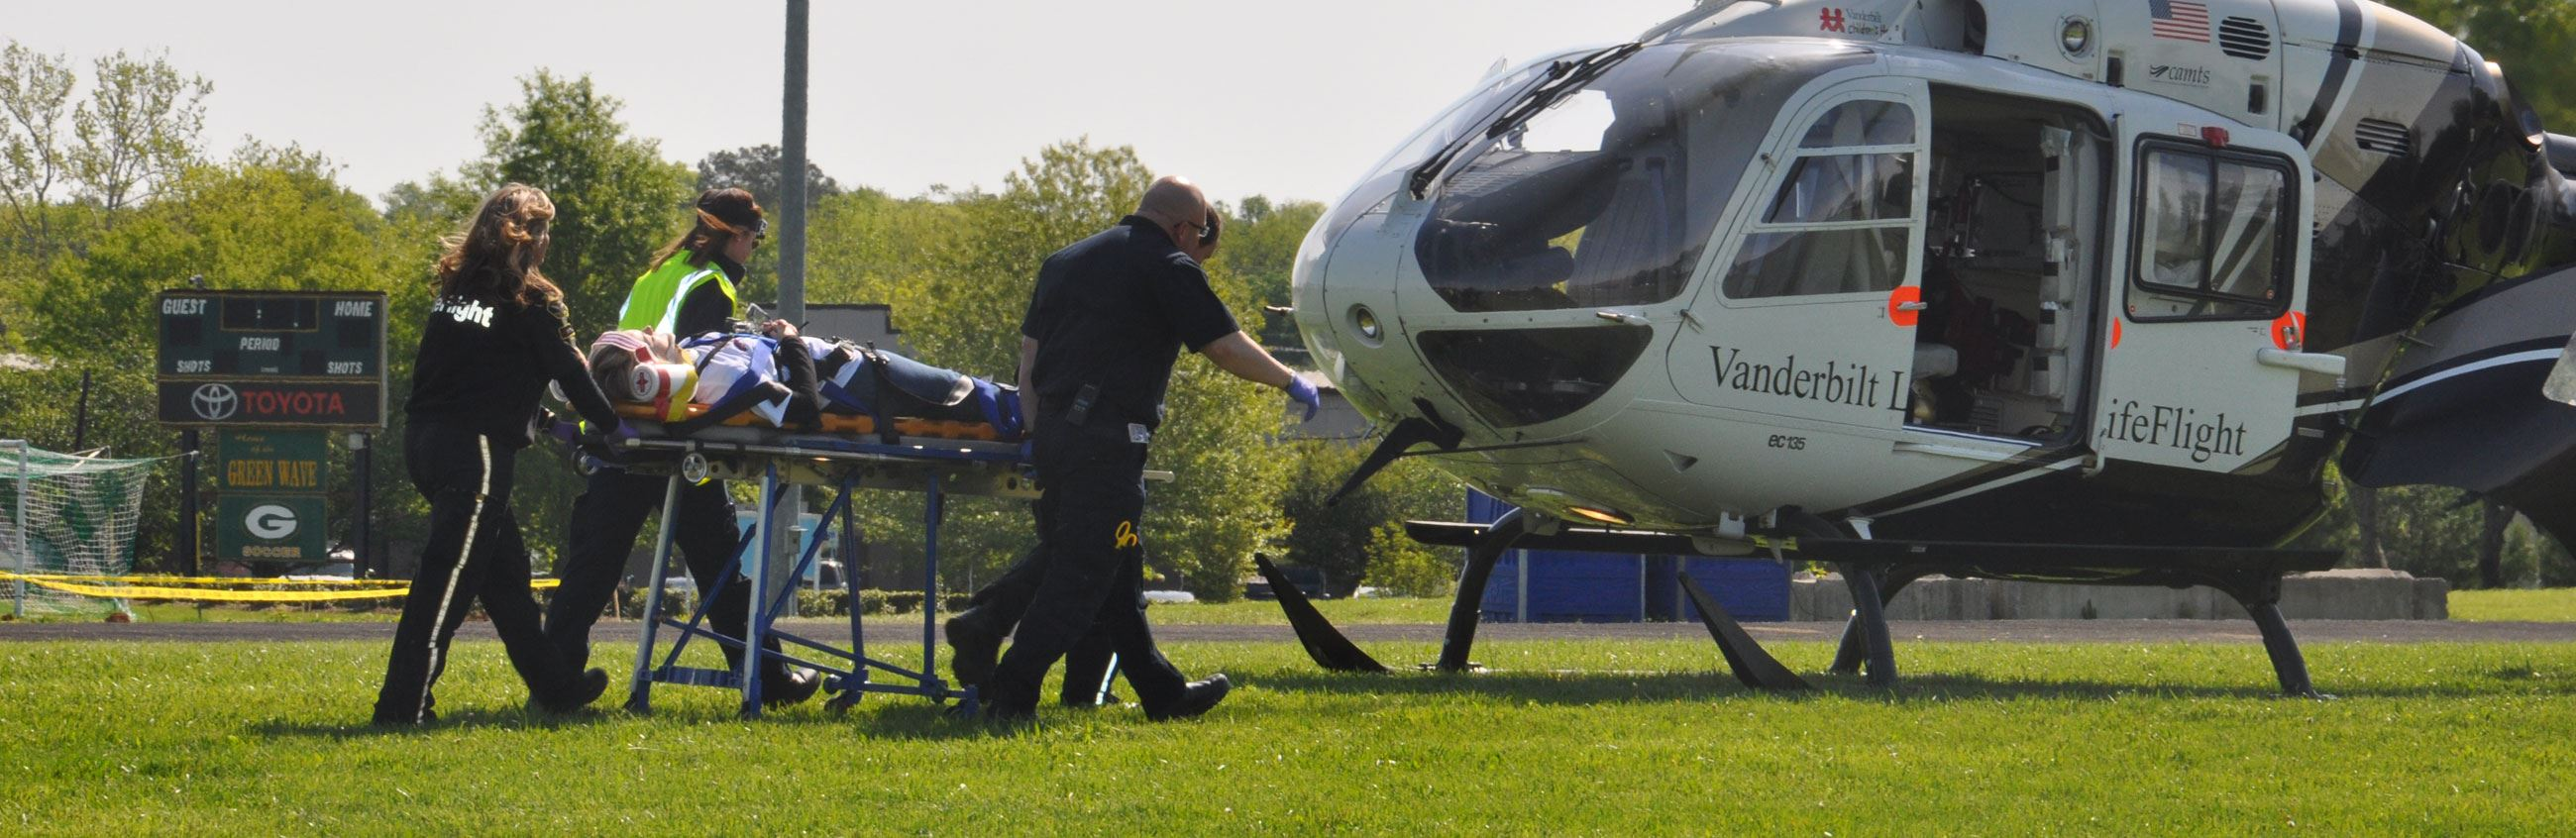 Emergency Crew Loads Victim on Helicopter